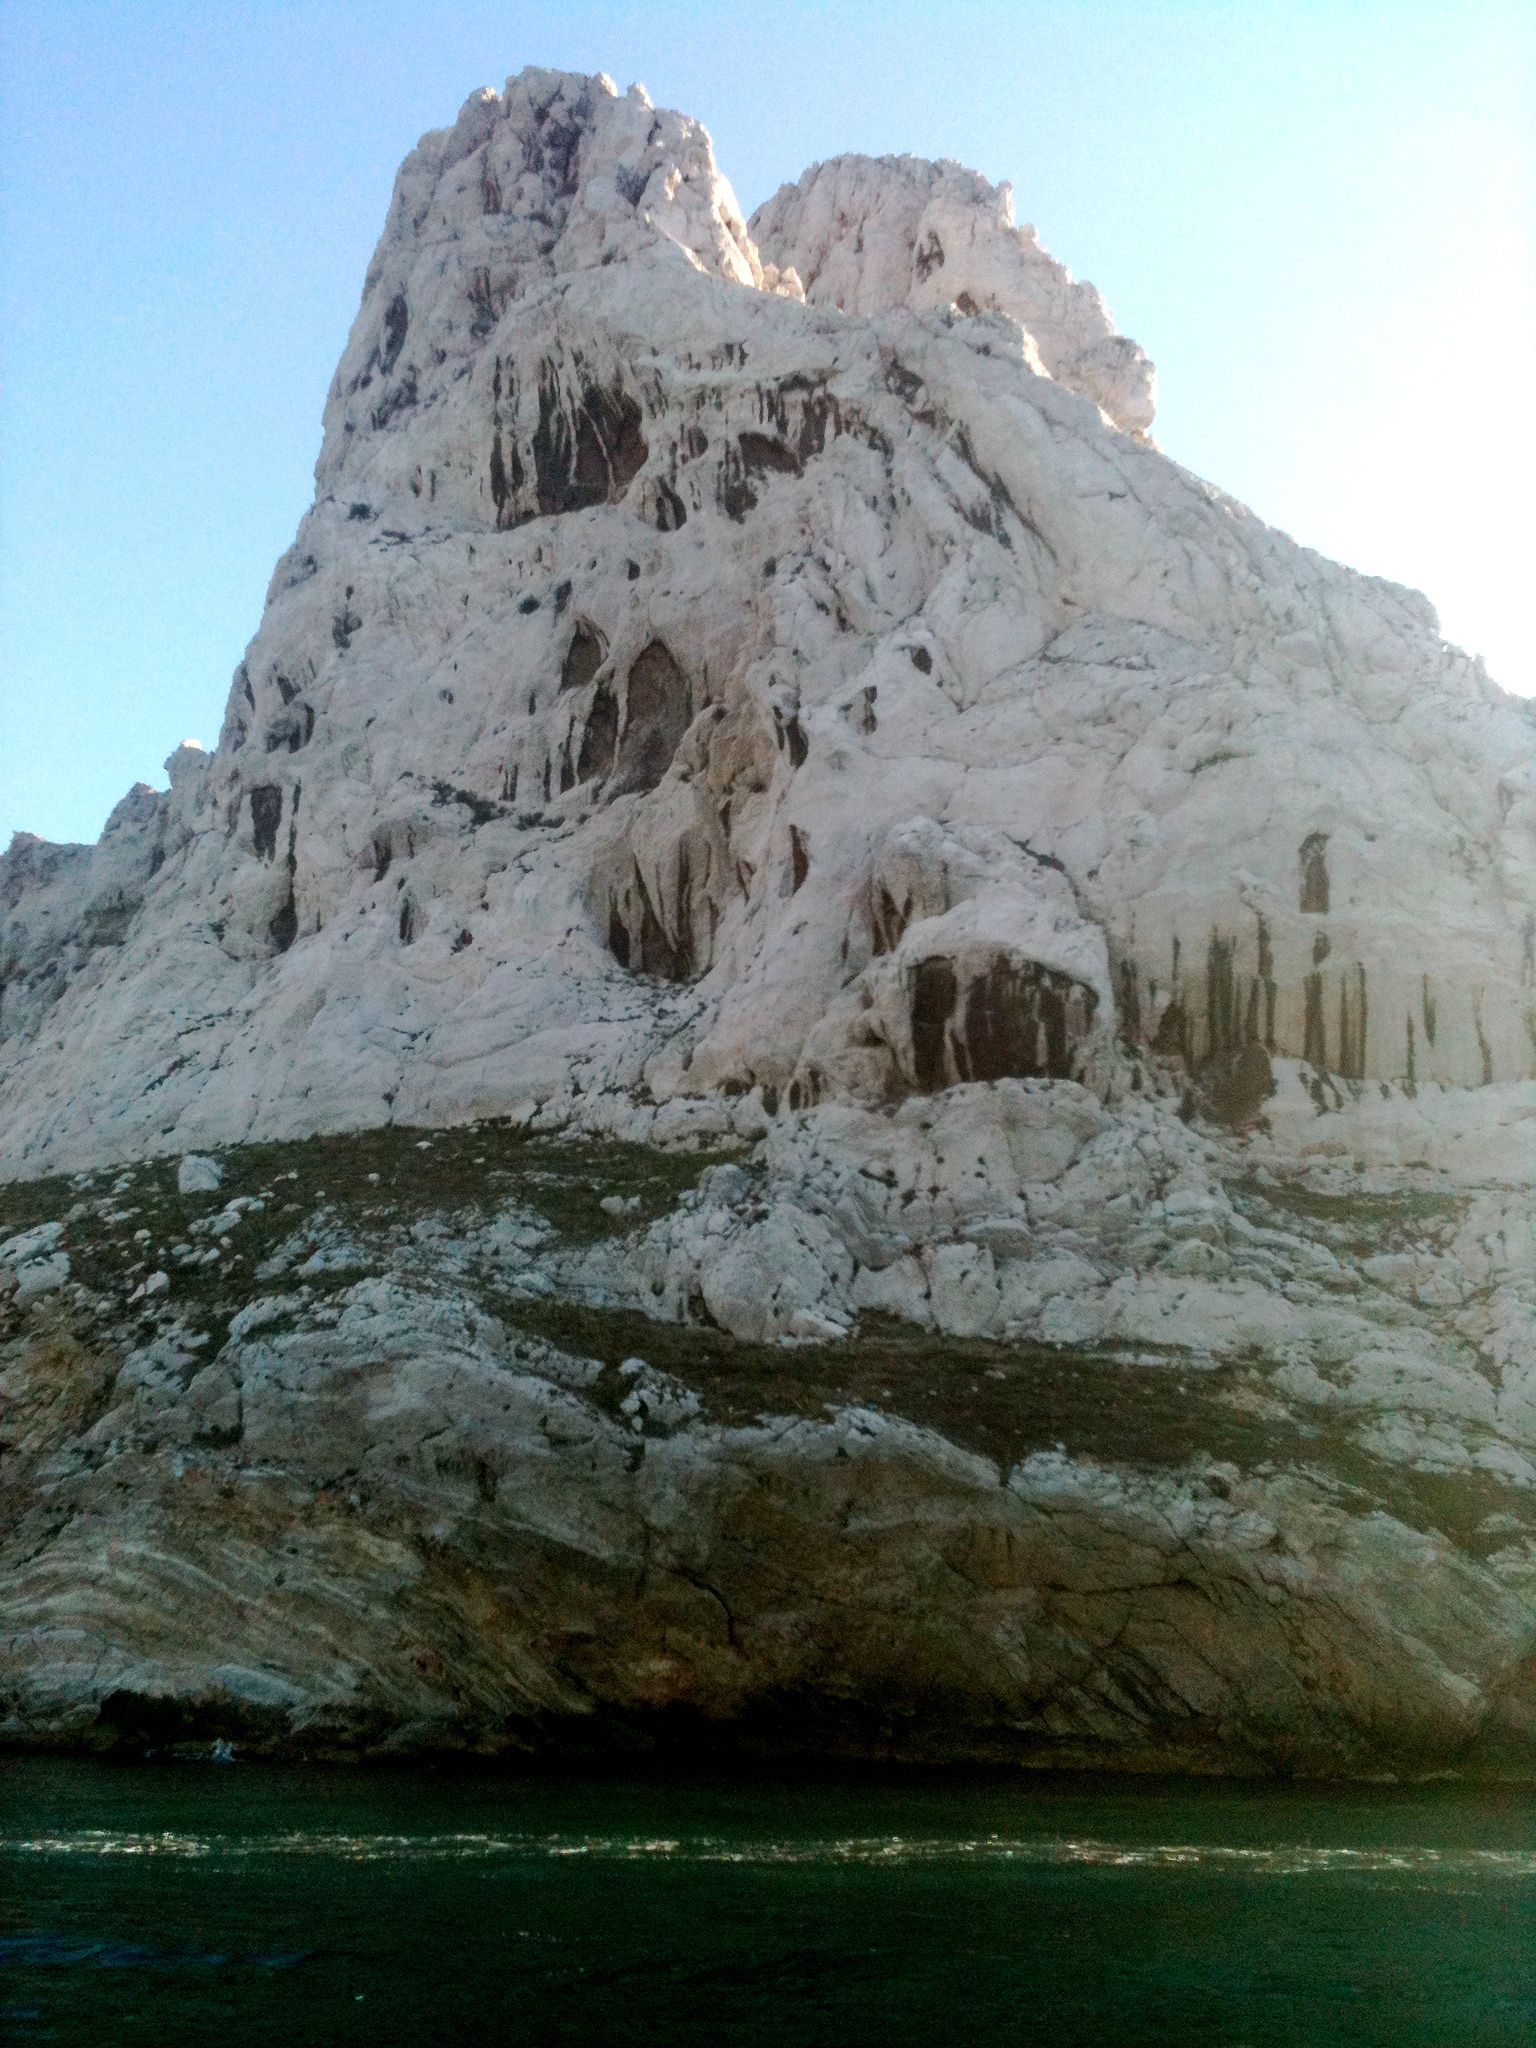 We have our very own island of Dr. Moreau in Marseille, called the Isle de Maïre